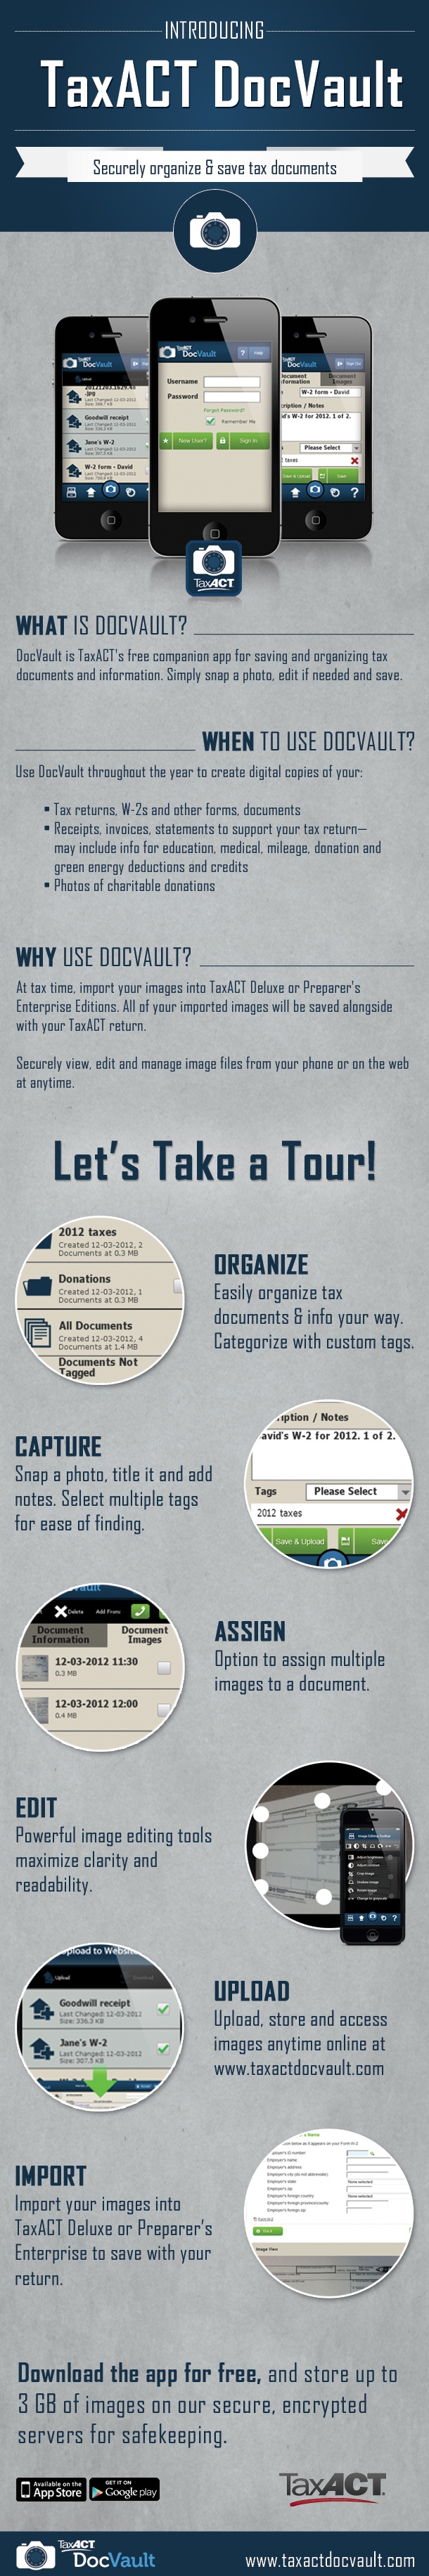 35 best Tax Preparation images on Pinterest | Tax preparation, The ...